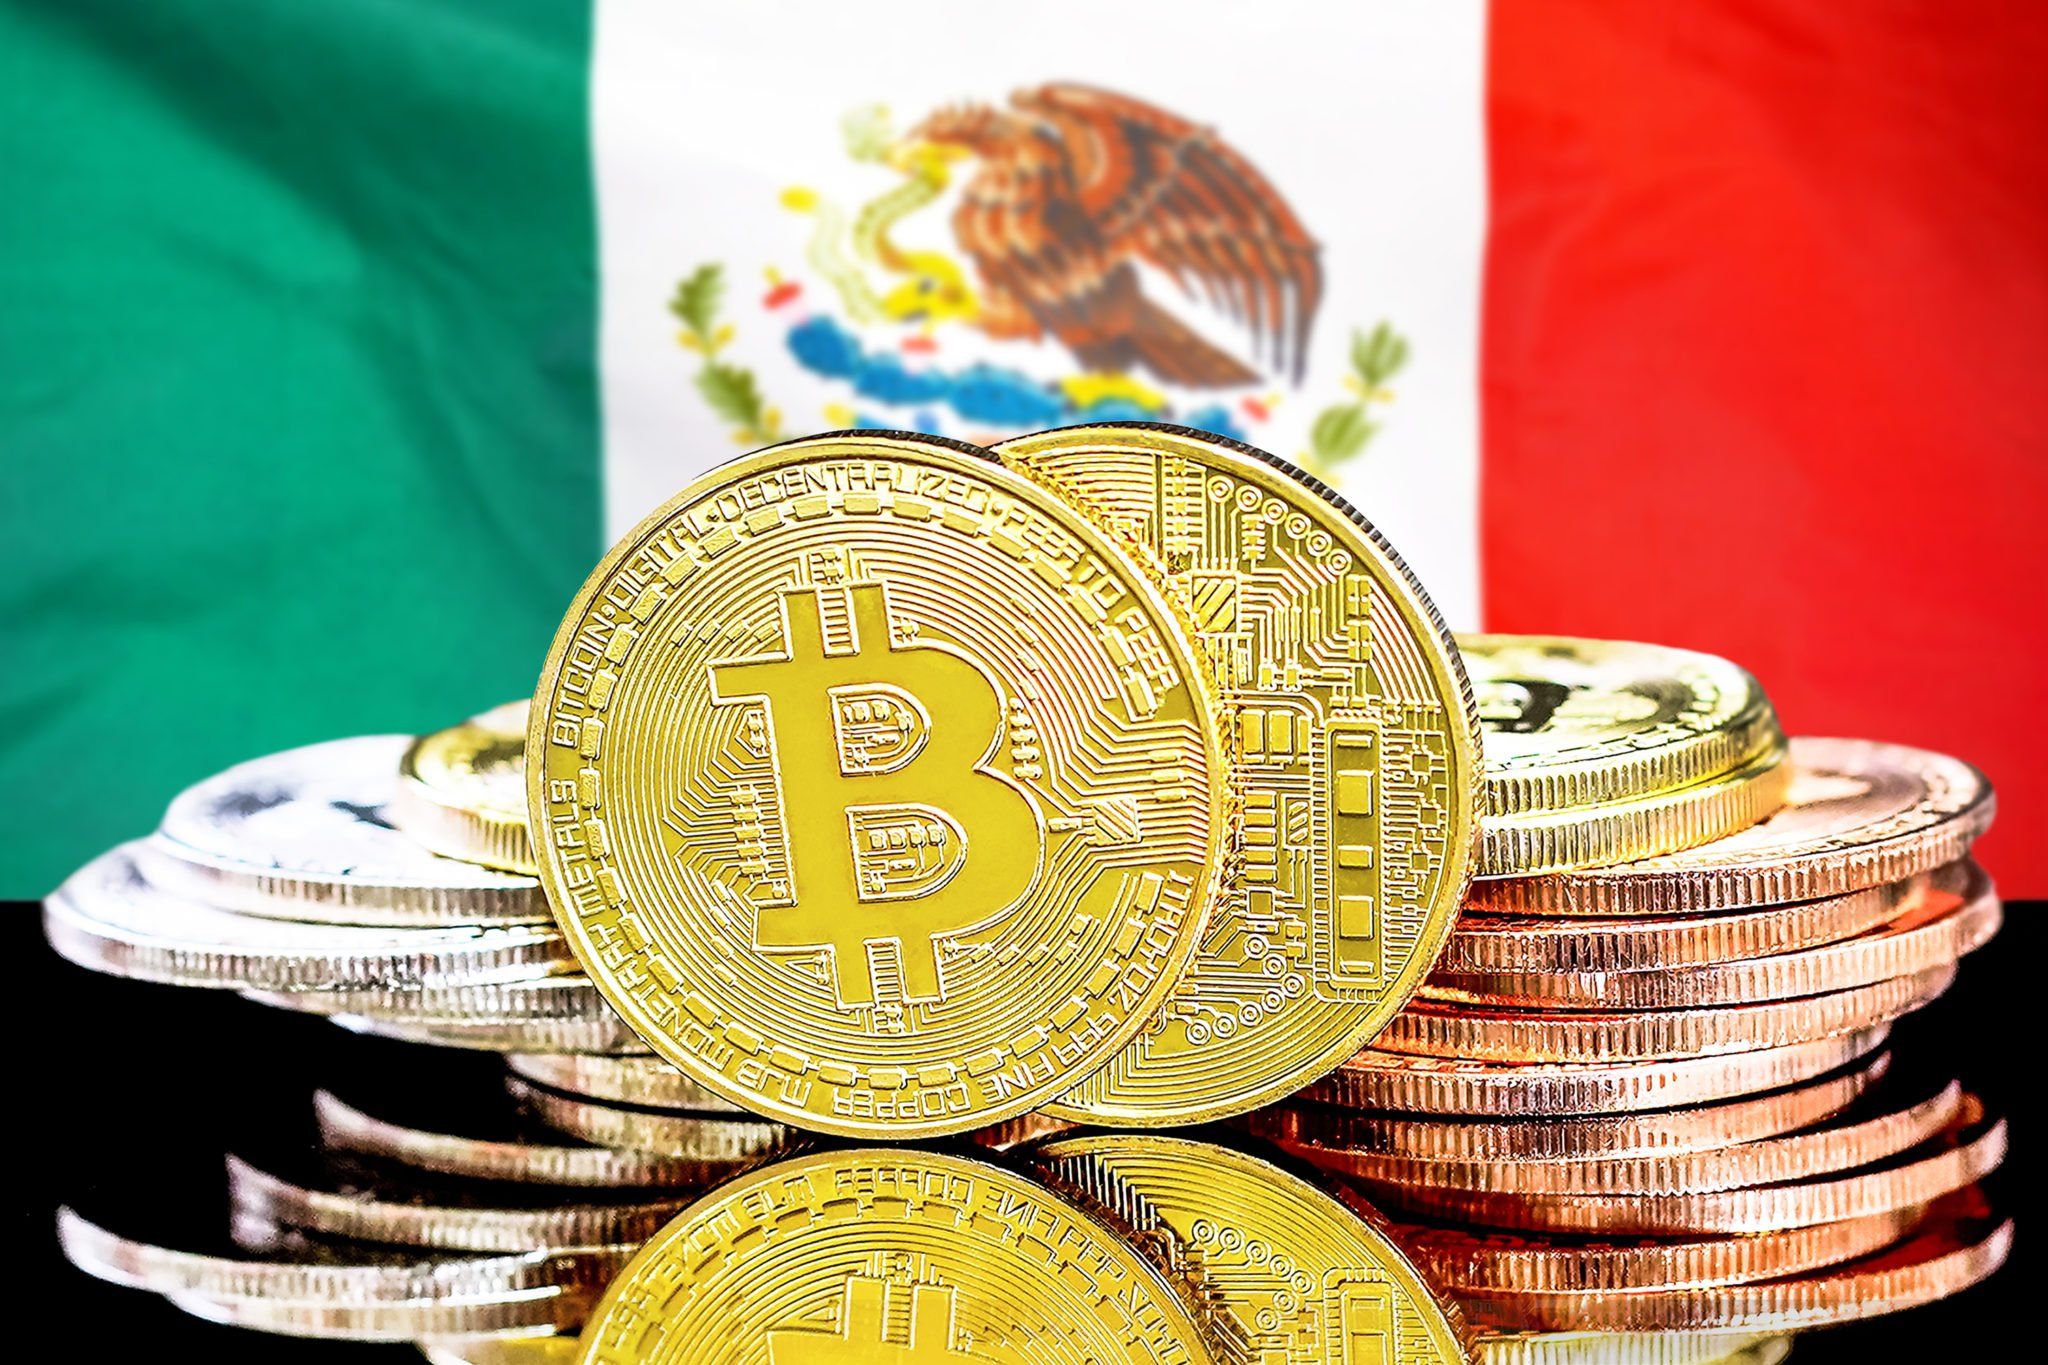 The Mexican stock exchange is considering the possibility of listing cryptocurrency futures